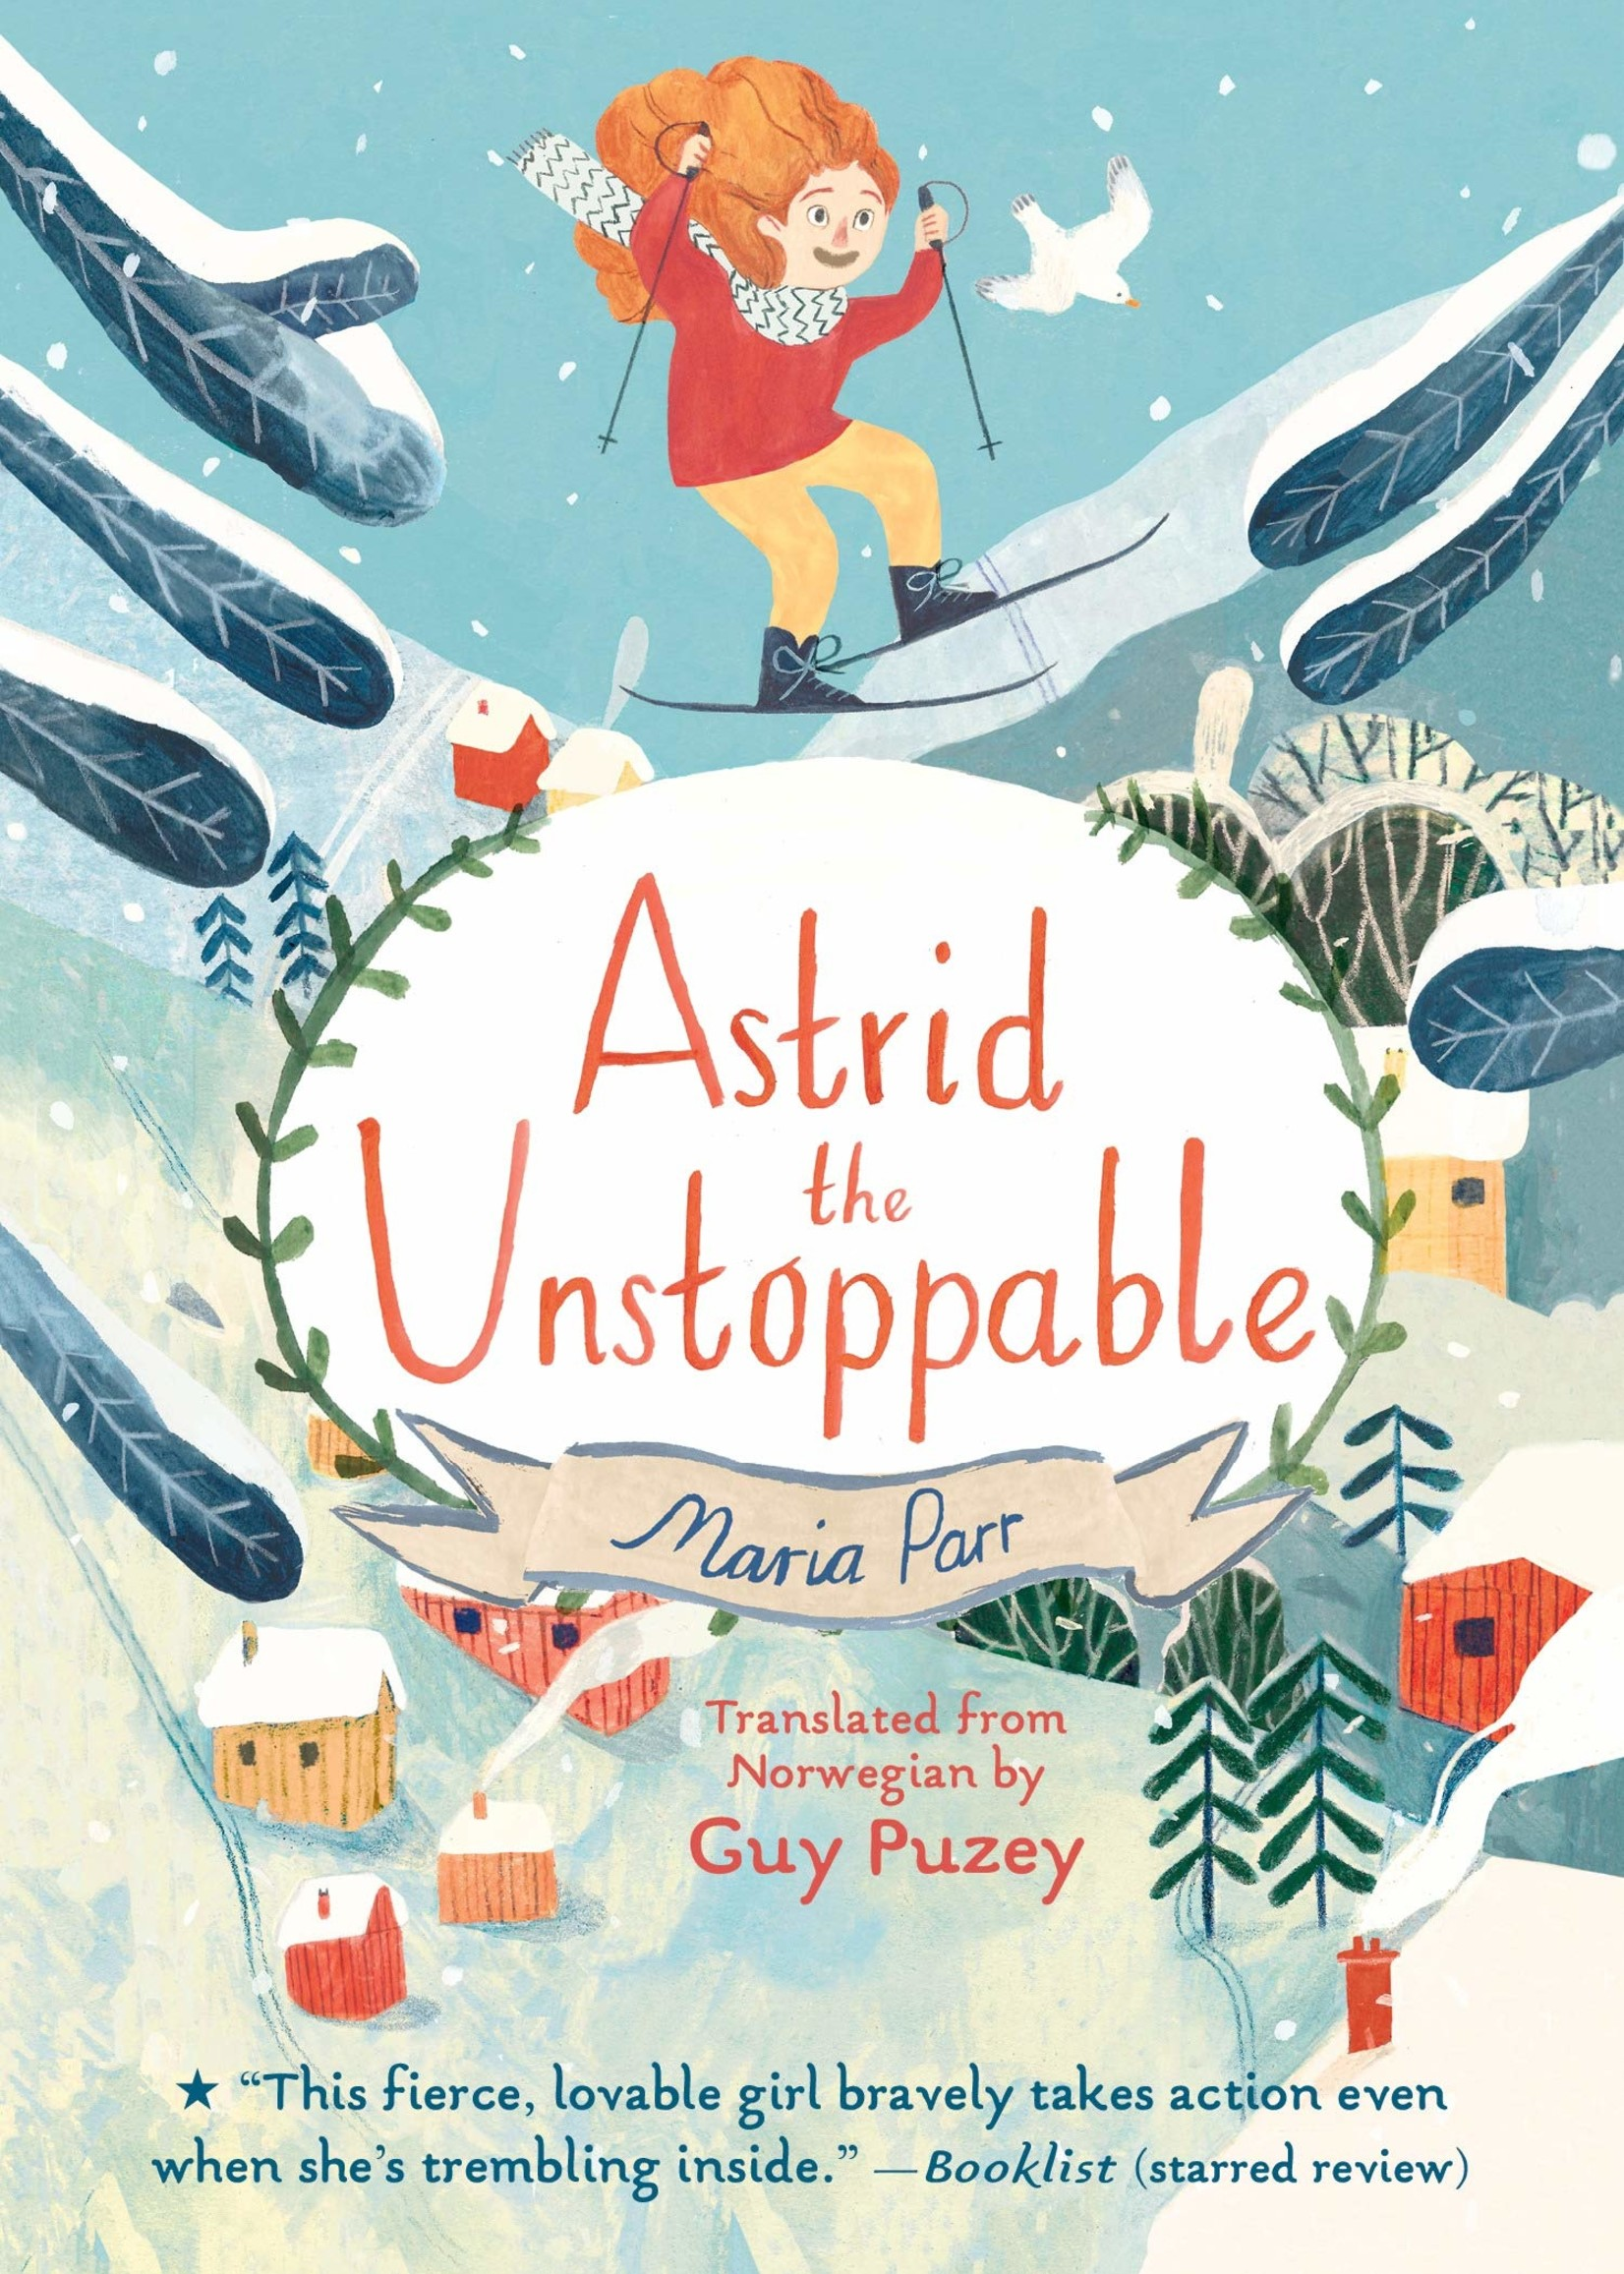 OBOB 21/22: Astrid the Unstoppable - Paperback